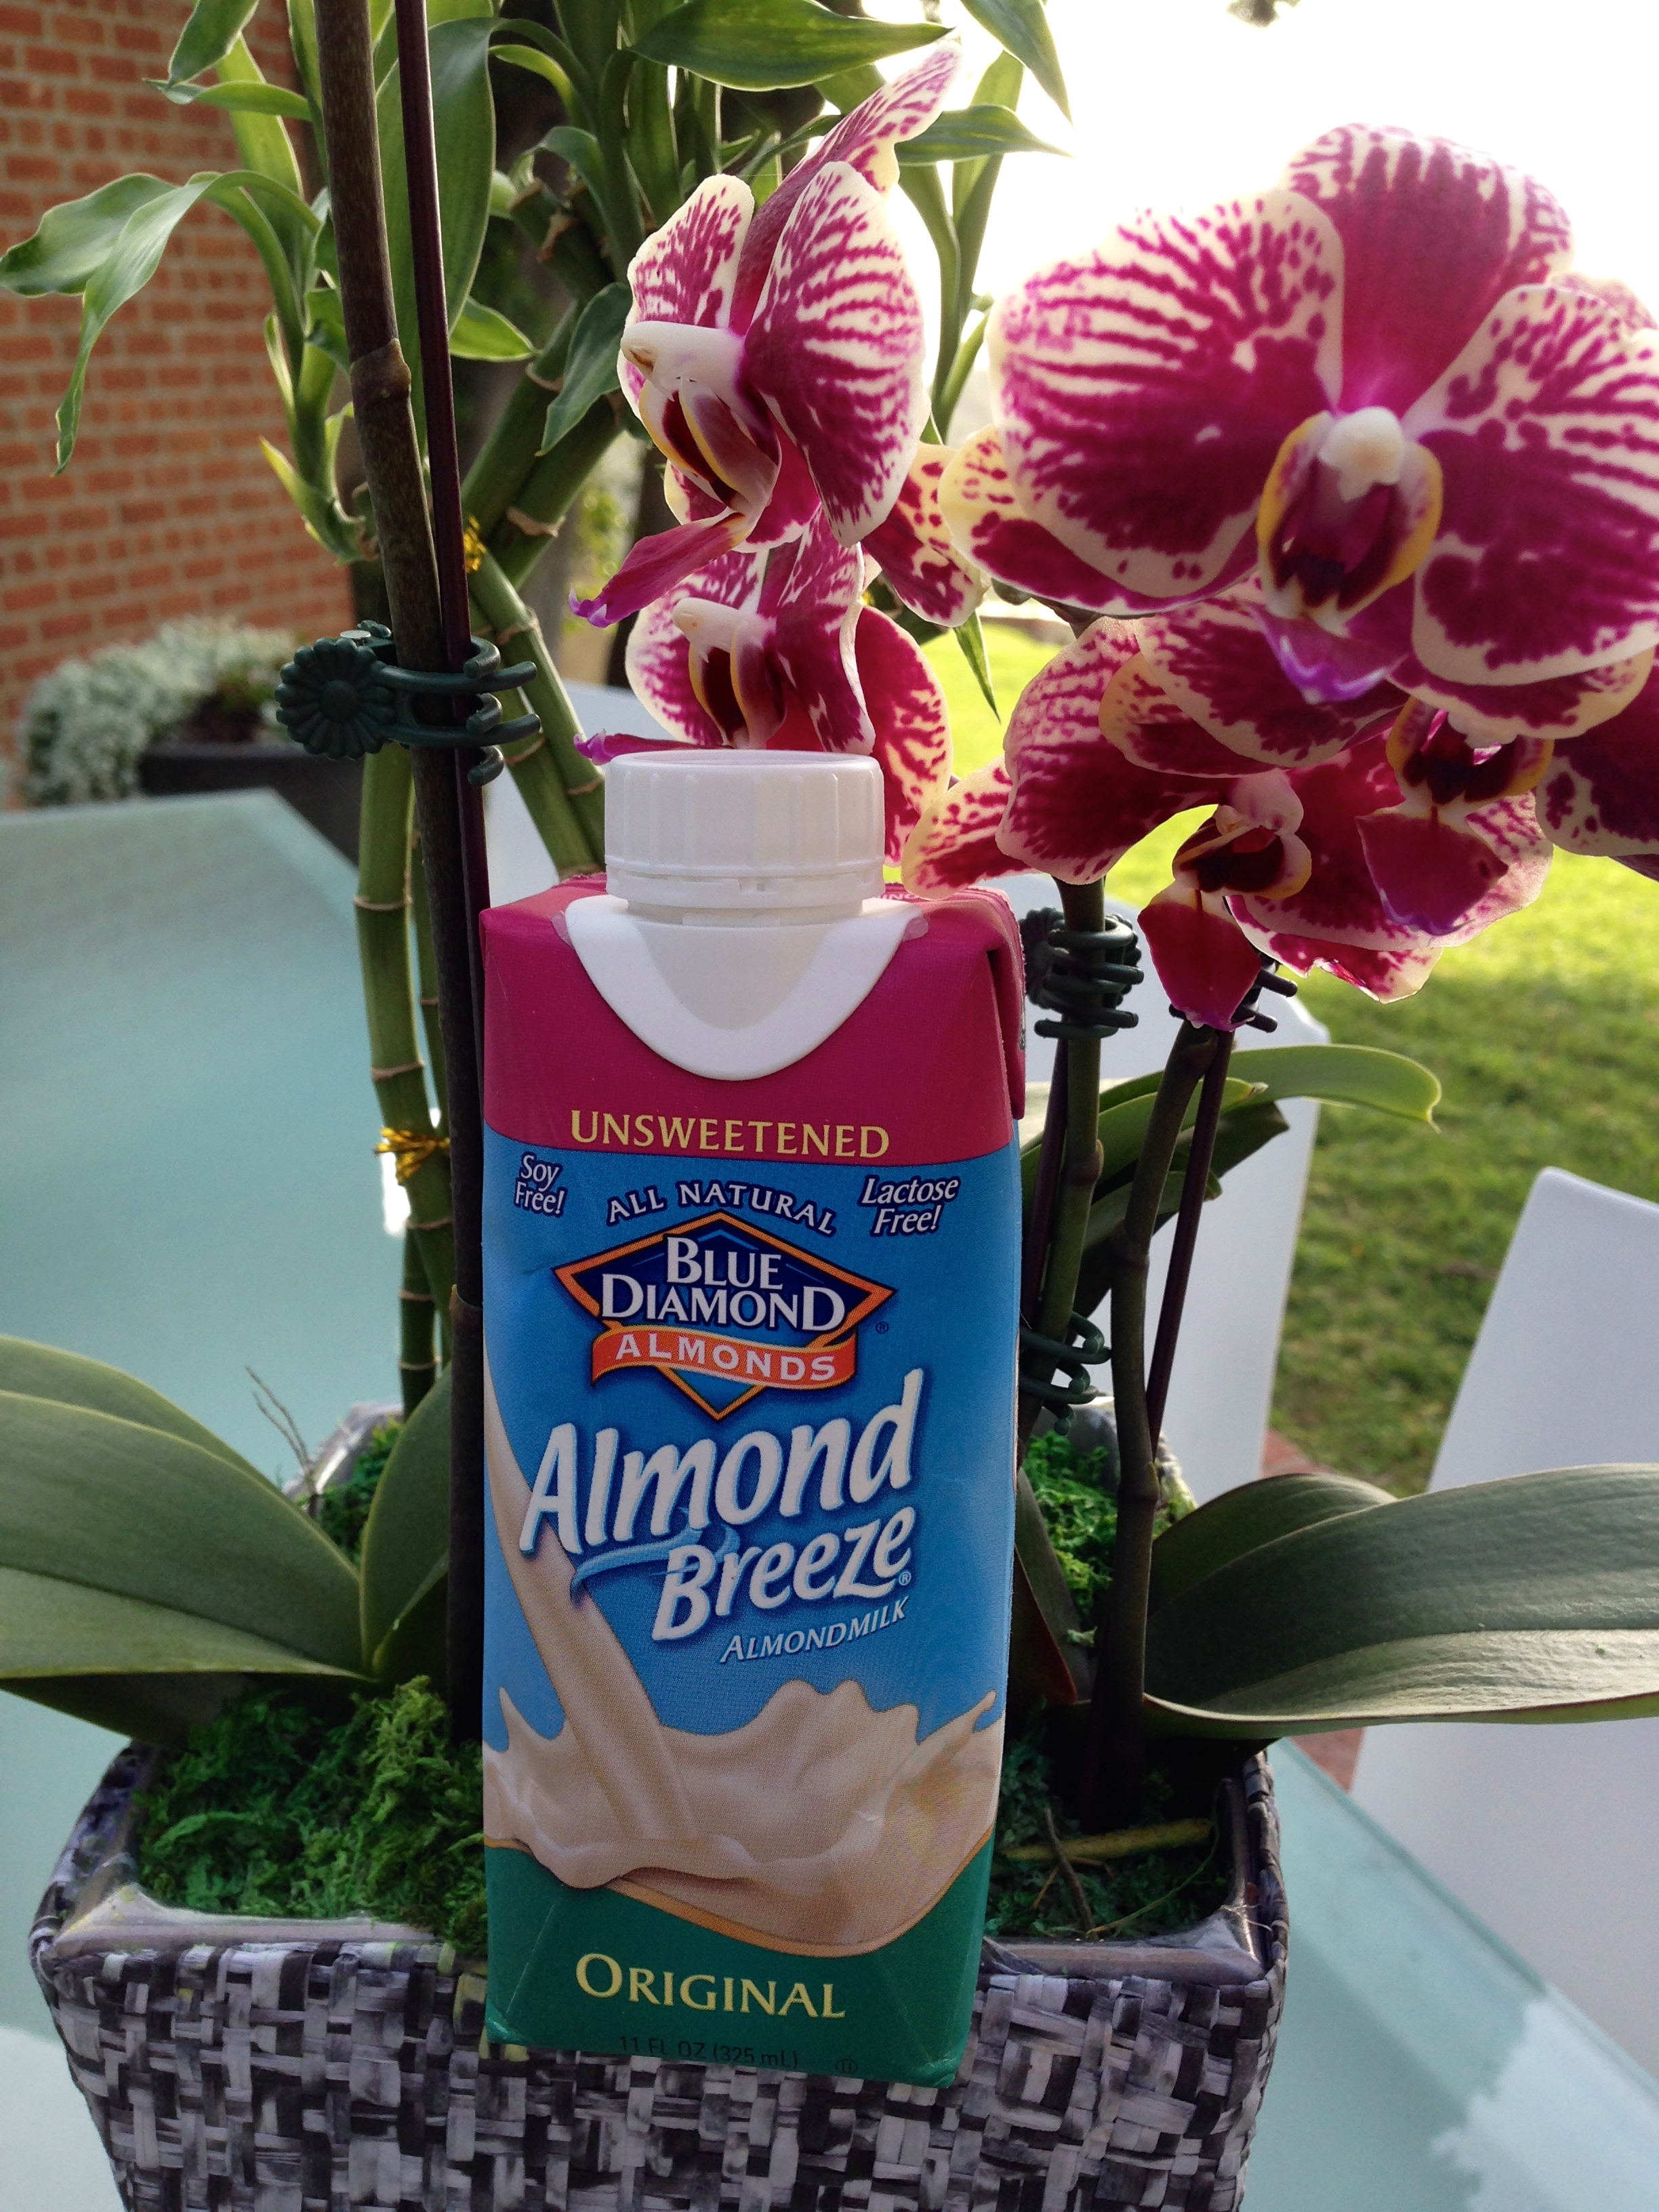 Blue Diamond delicious almond milk.